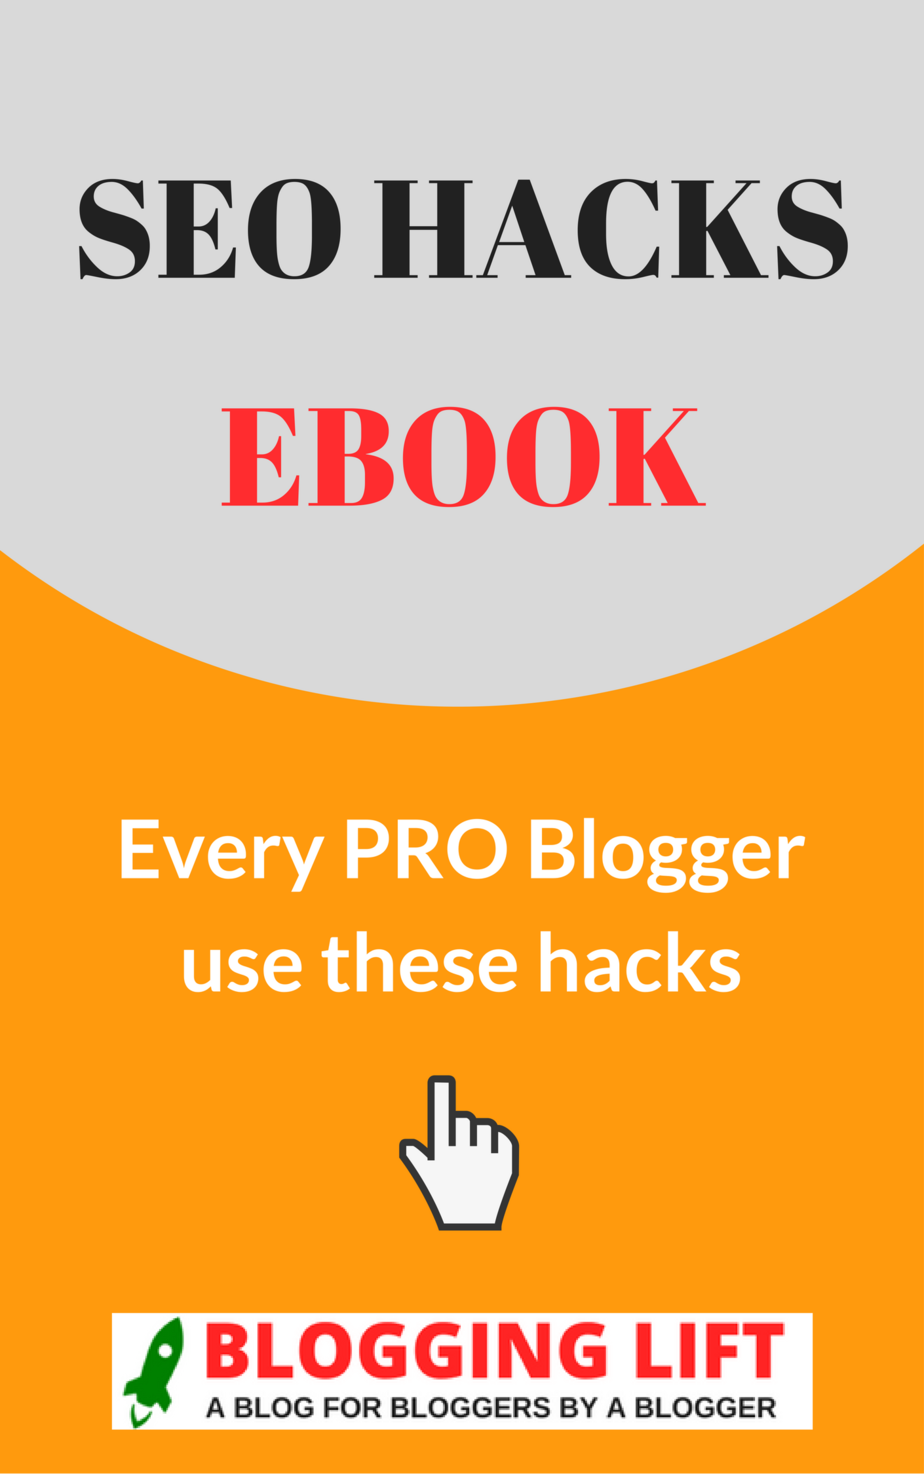 seo-hacks-ebook-free-download